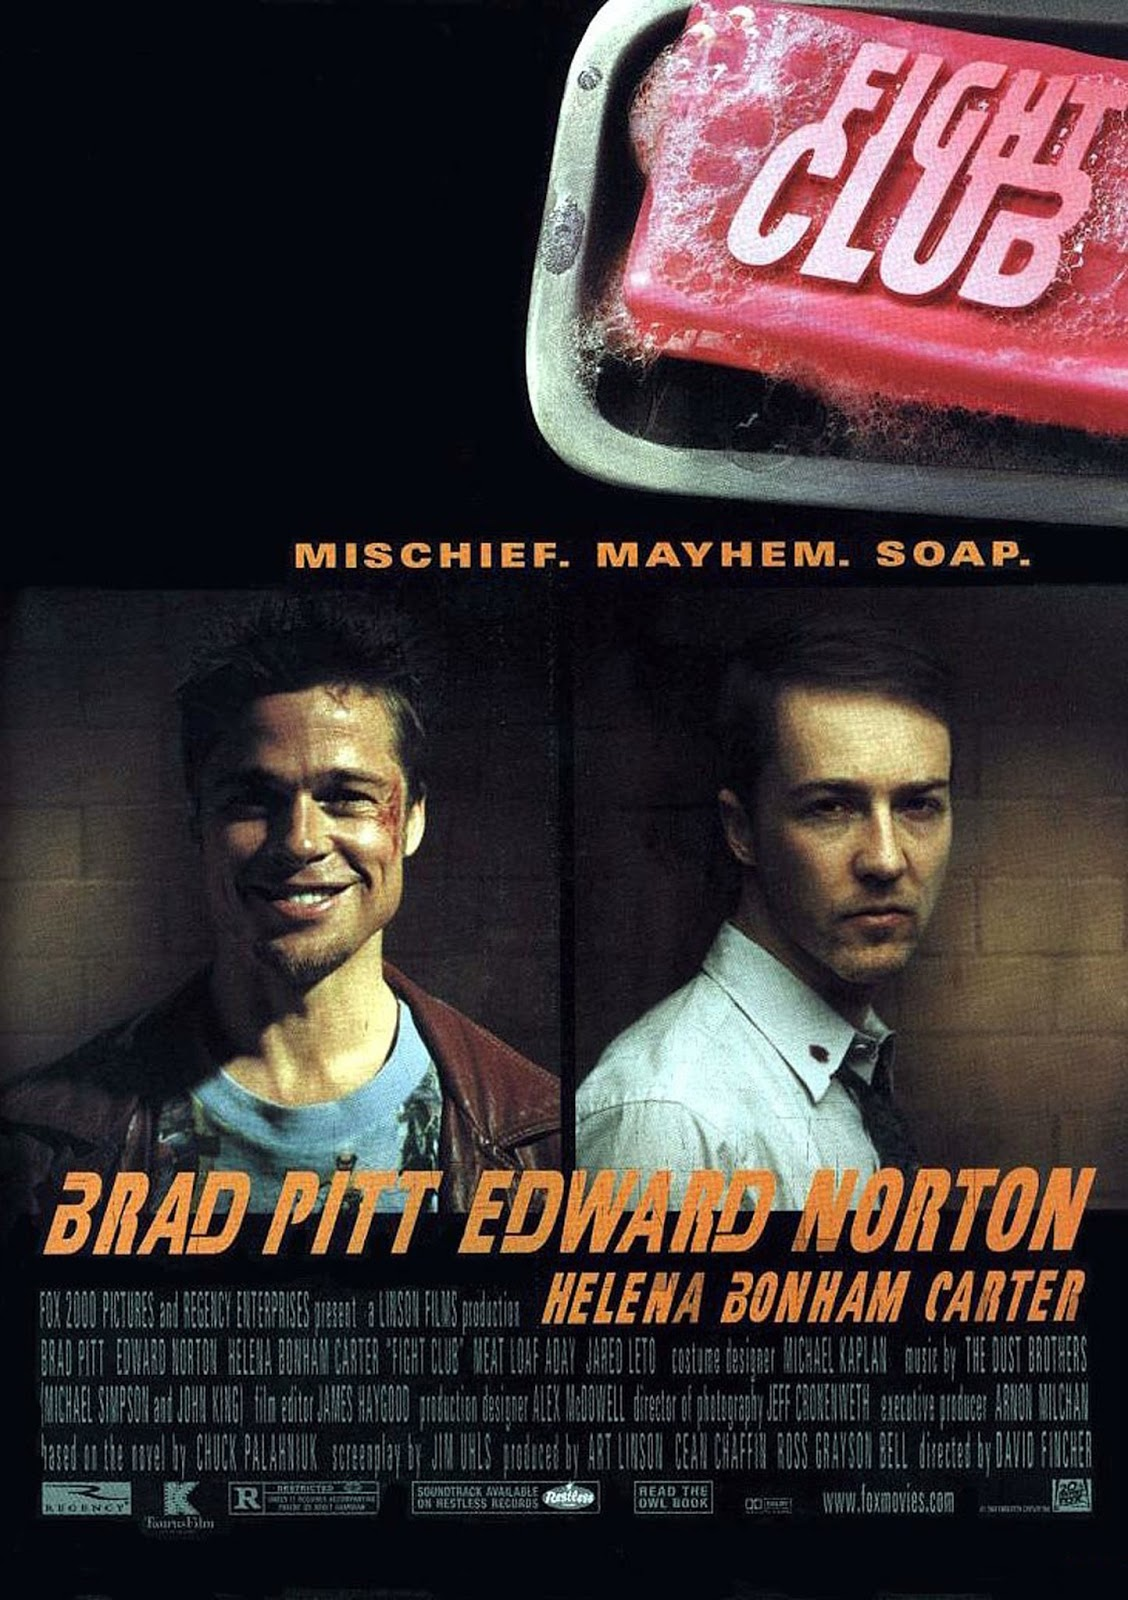 The theatrical release poster for Fight Club. From left to right it depicts a smiling Brad Pitt and a serious Edward Norton separated into two panels. The movie's tagline reads: Mischief. Mayhem. Soap. A photograph of a pink bar of soap is depicted in the top-right of the image with the title of the movie printed over top of it.